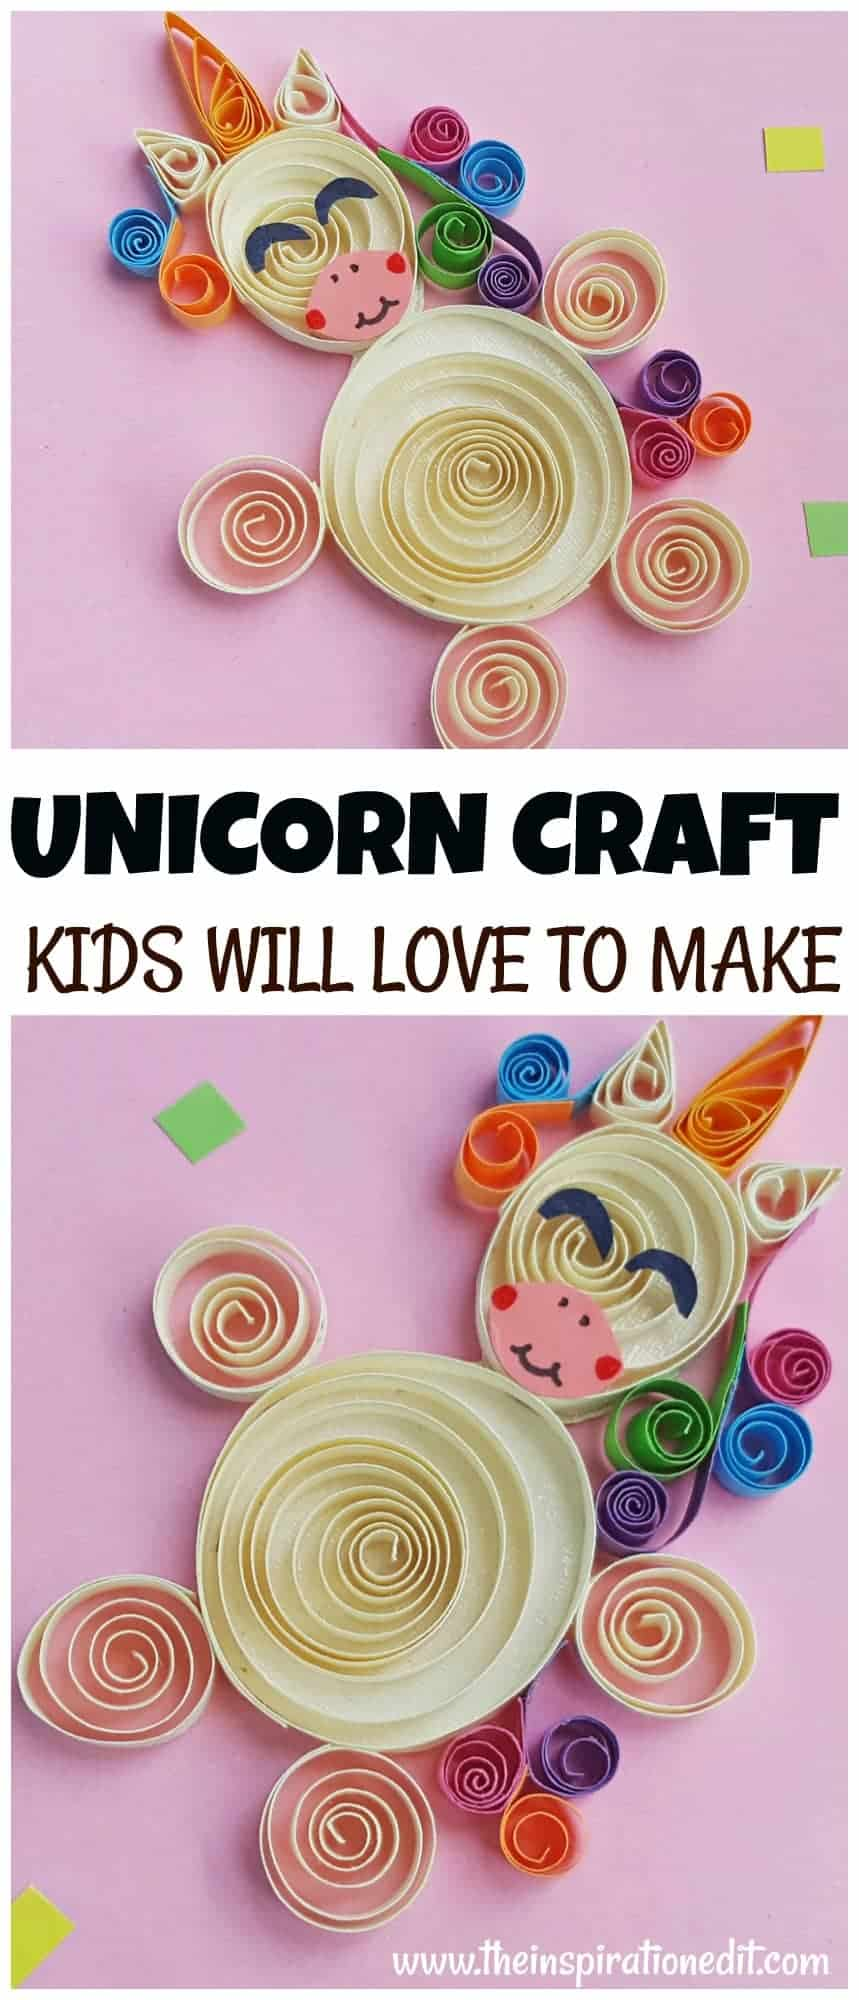 unicorn pictures kids craft idea unicorn quilling